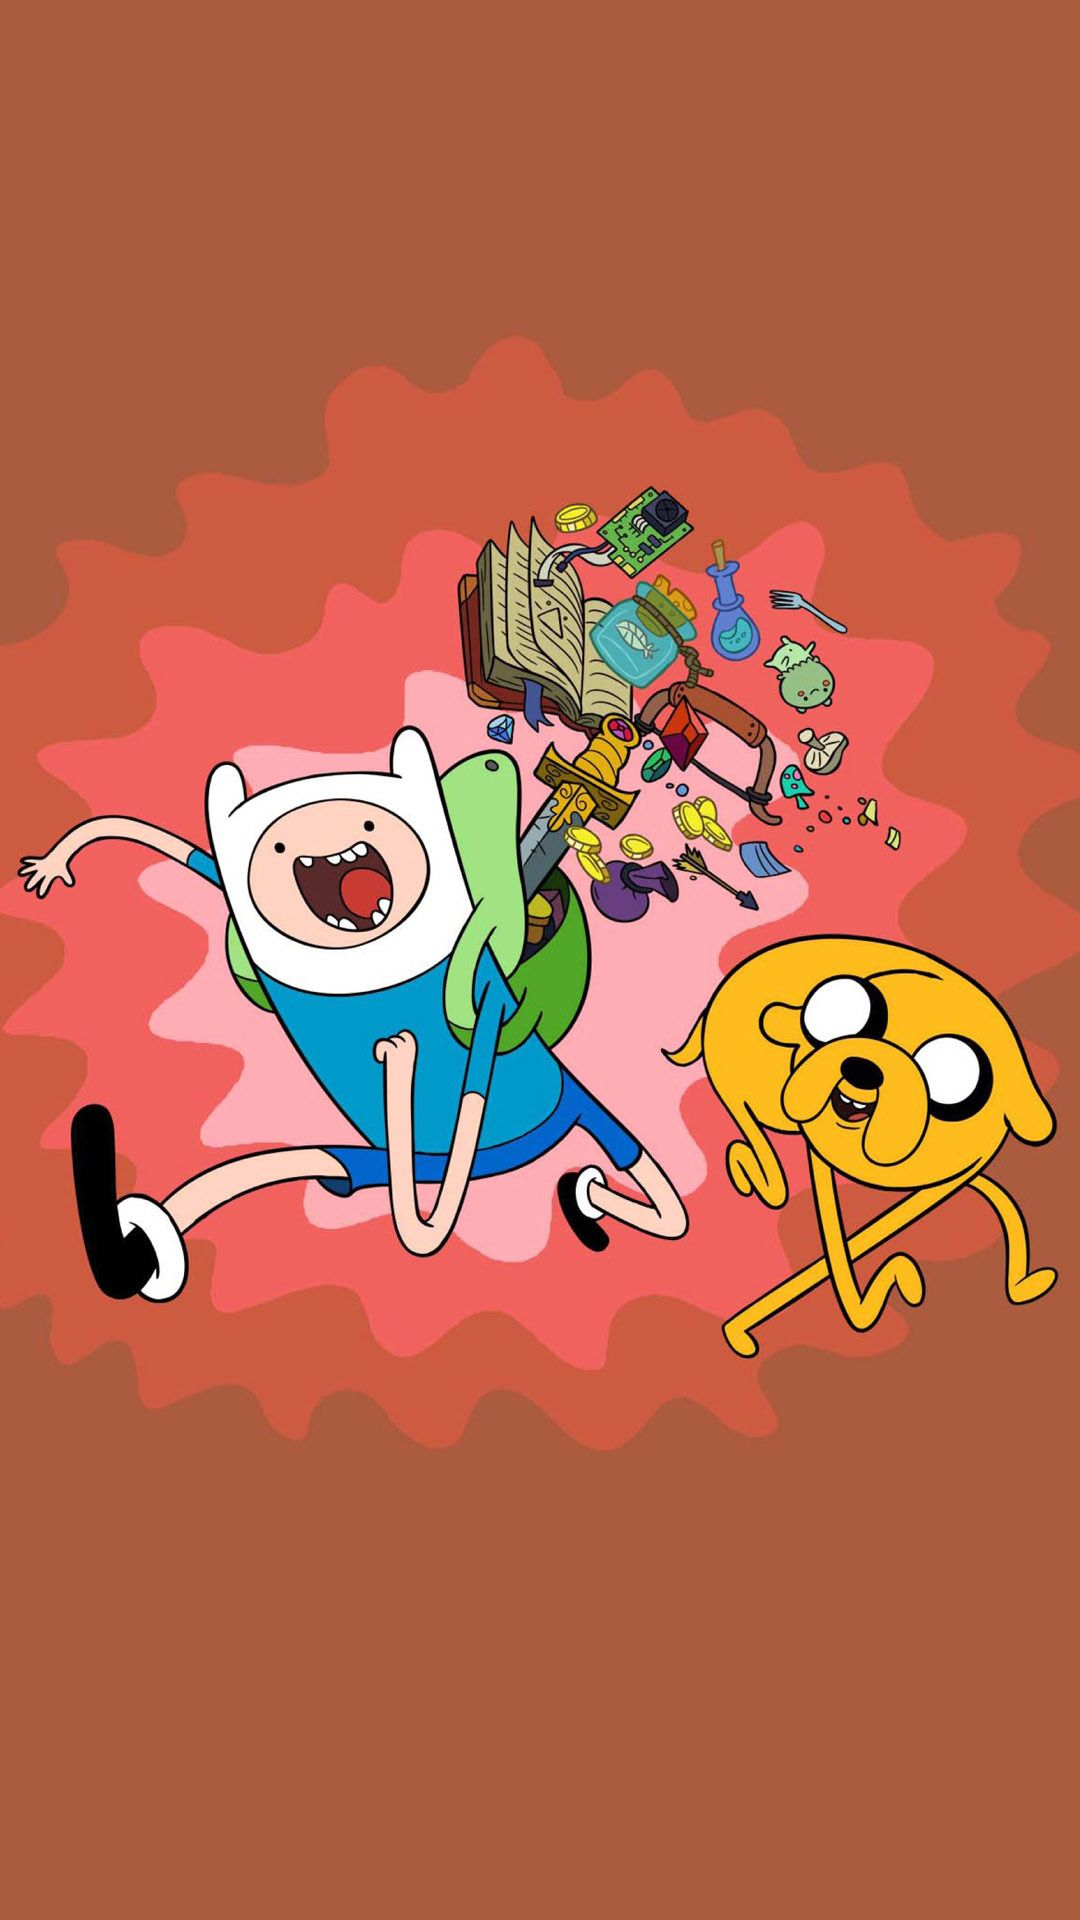 Pictures From Adventure Time